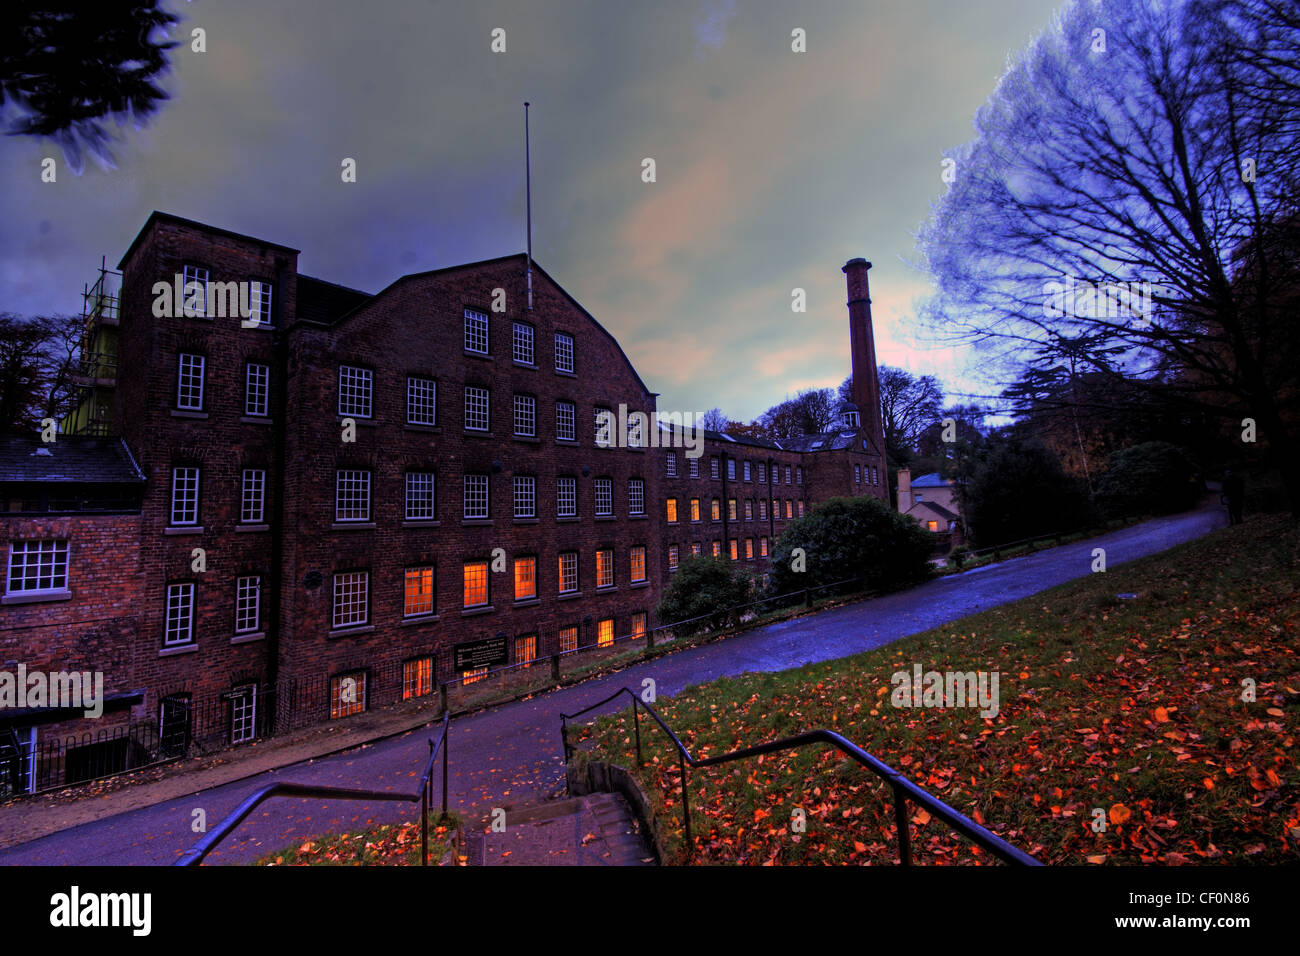 Styal Cotton Mill NT ( National Trust ) near Manchester Airport, Lancashire / Cheshire at dusk. - Stock Image